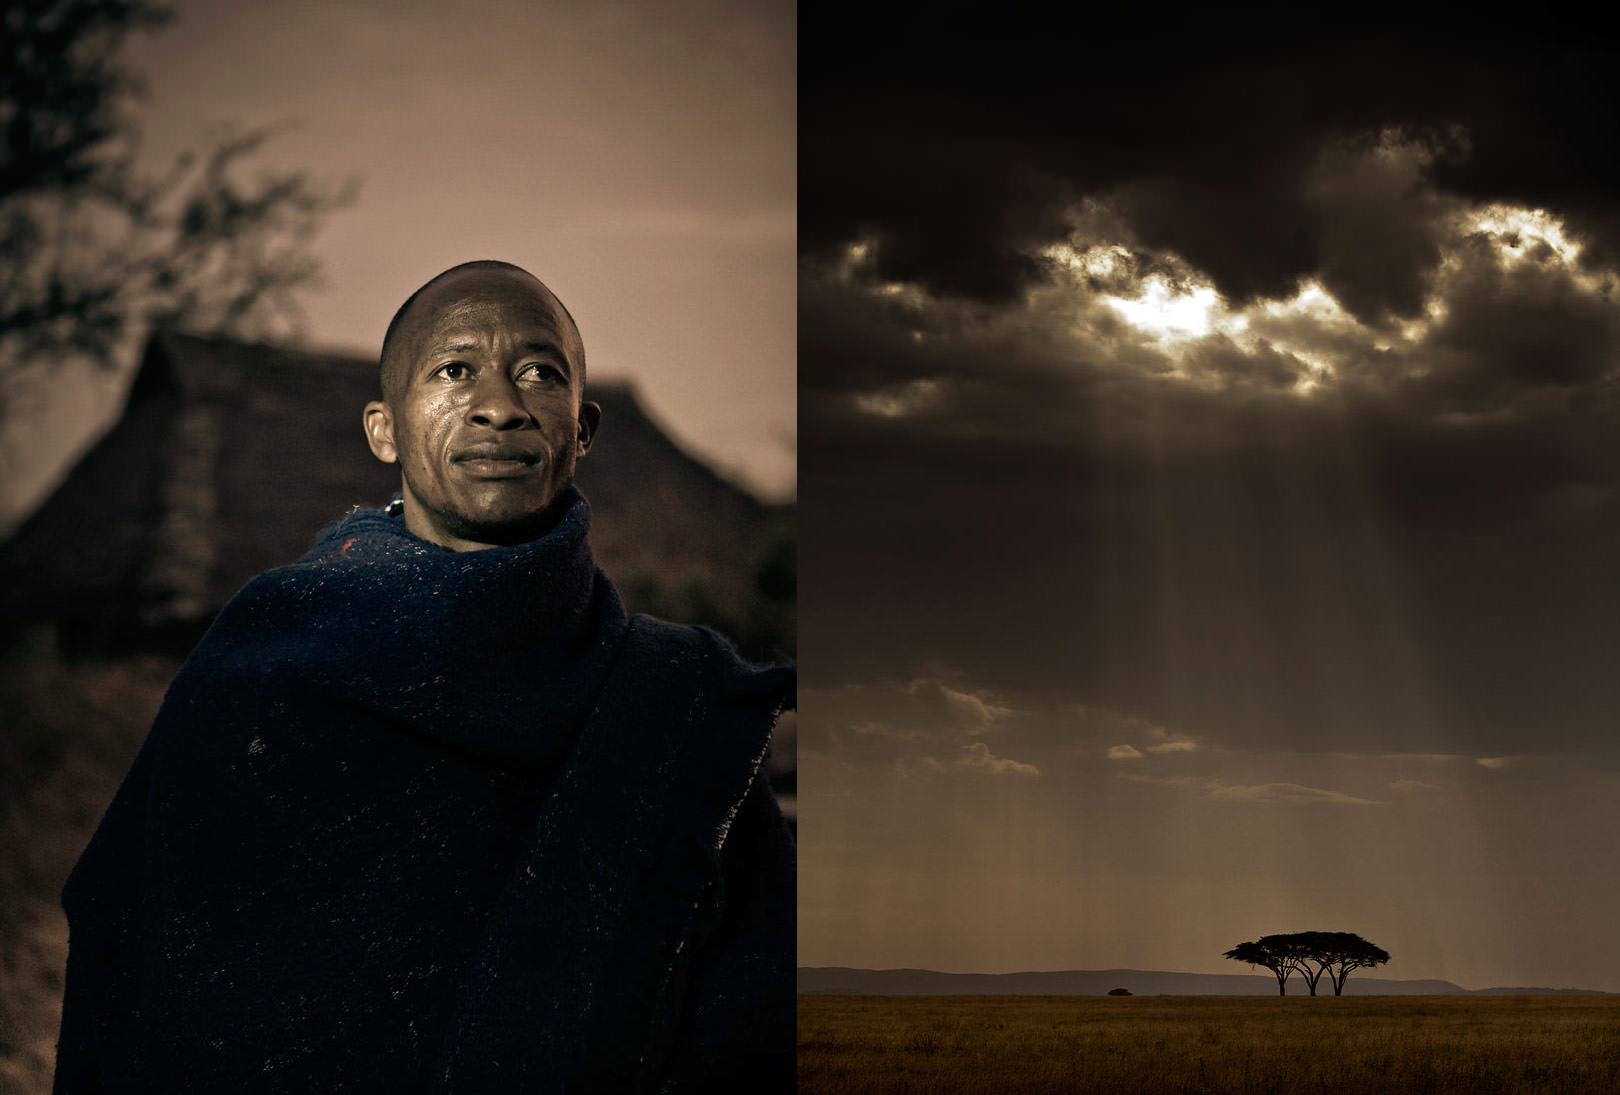 In Tanzania, Photography by Martin Klimek